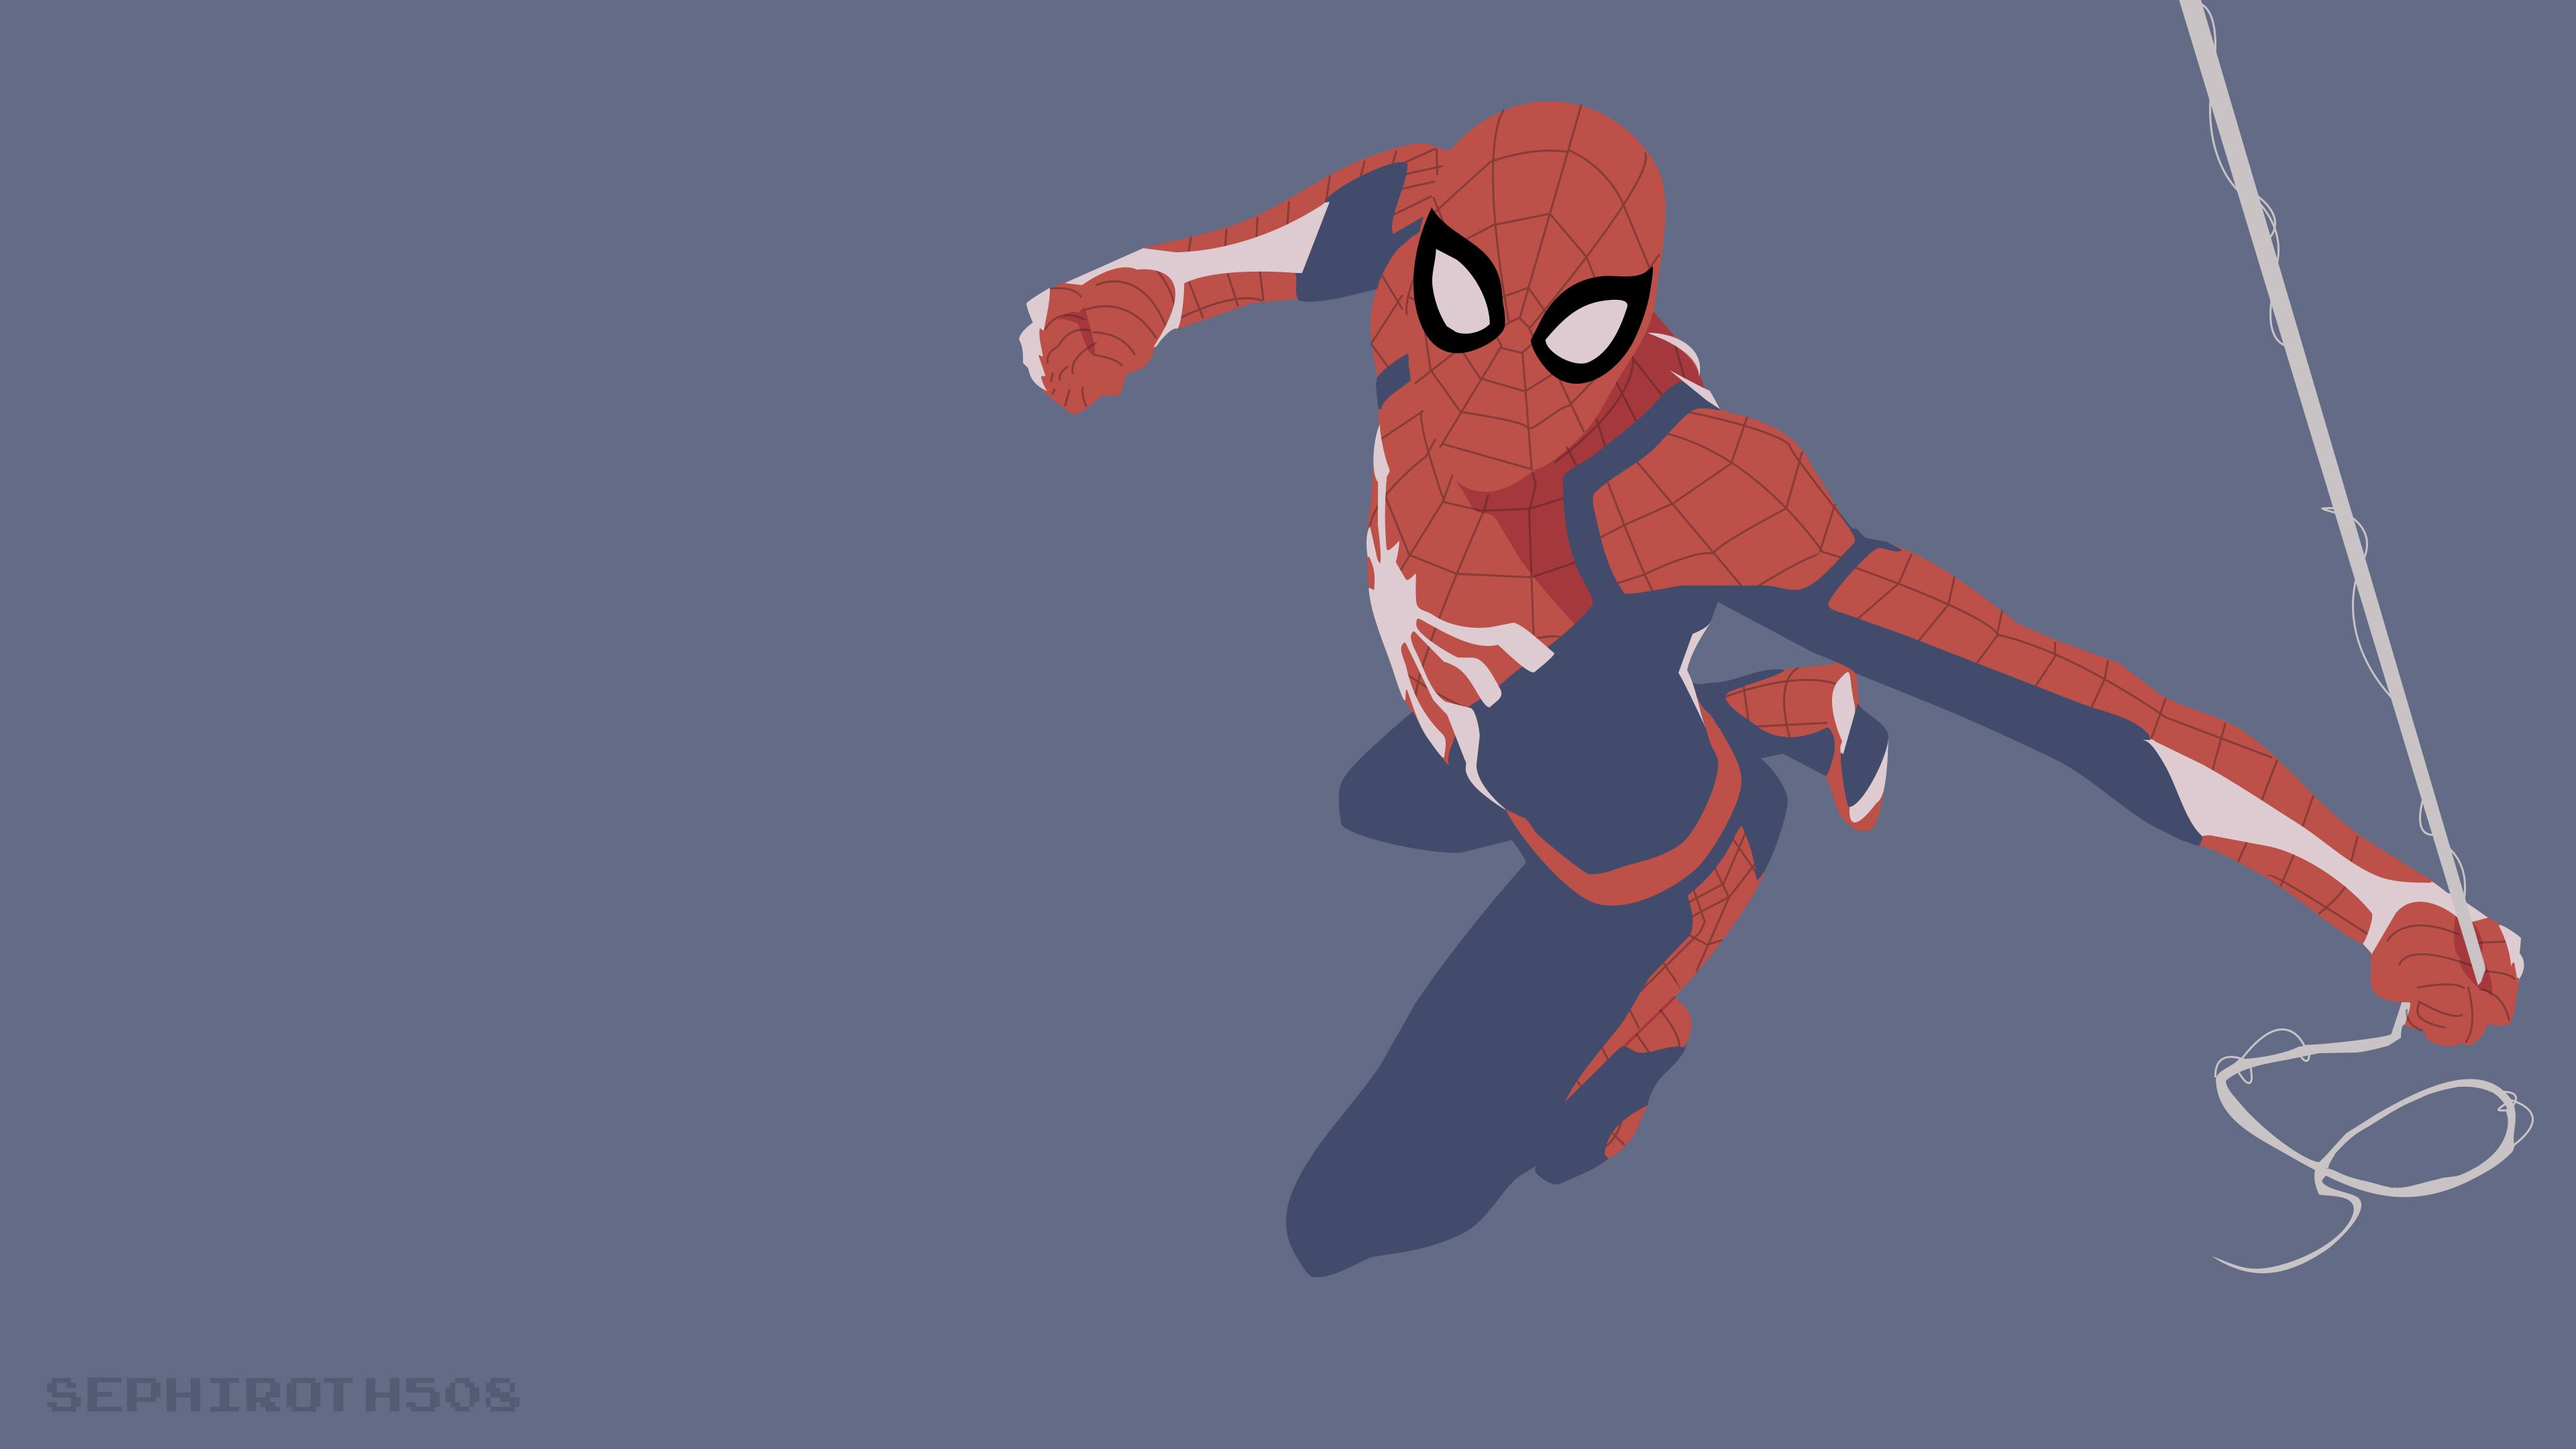 Spiderman Ps4 Minimalist Superheroes Wallpapers Spiderman Wallpapers Hd Wallpapers Deviantart Wallpapers Artwork Wall Spiderman Ps4 Spiderman Art Spiderman